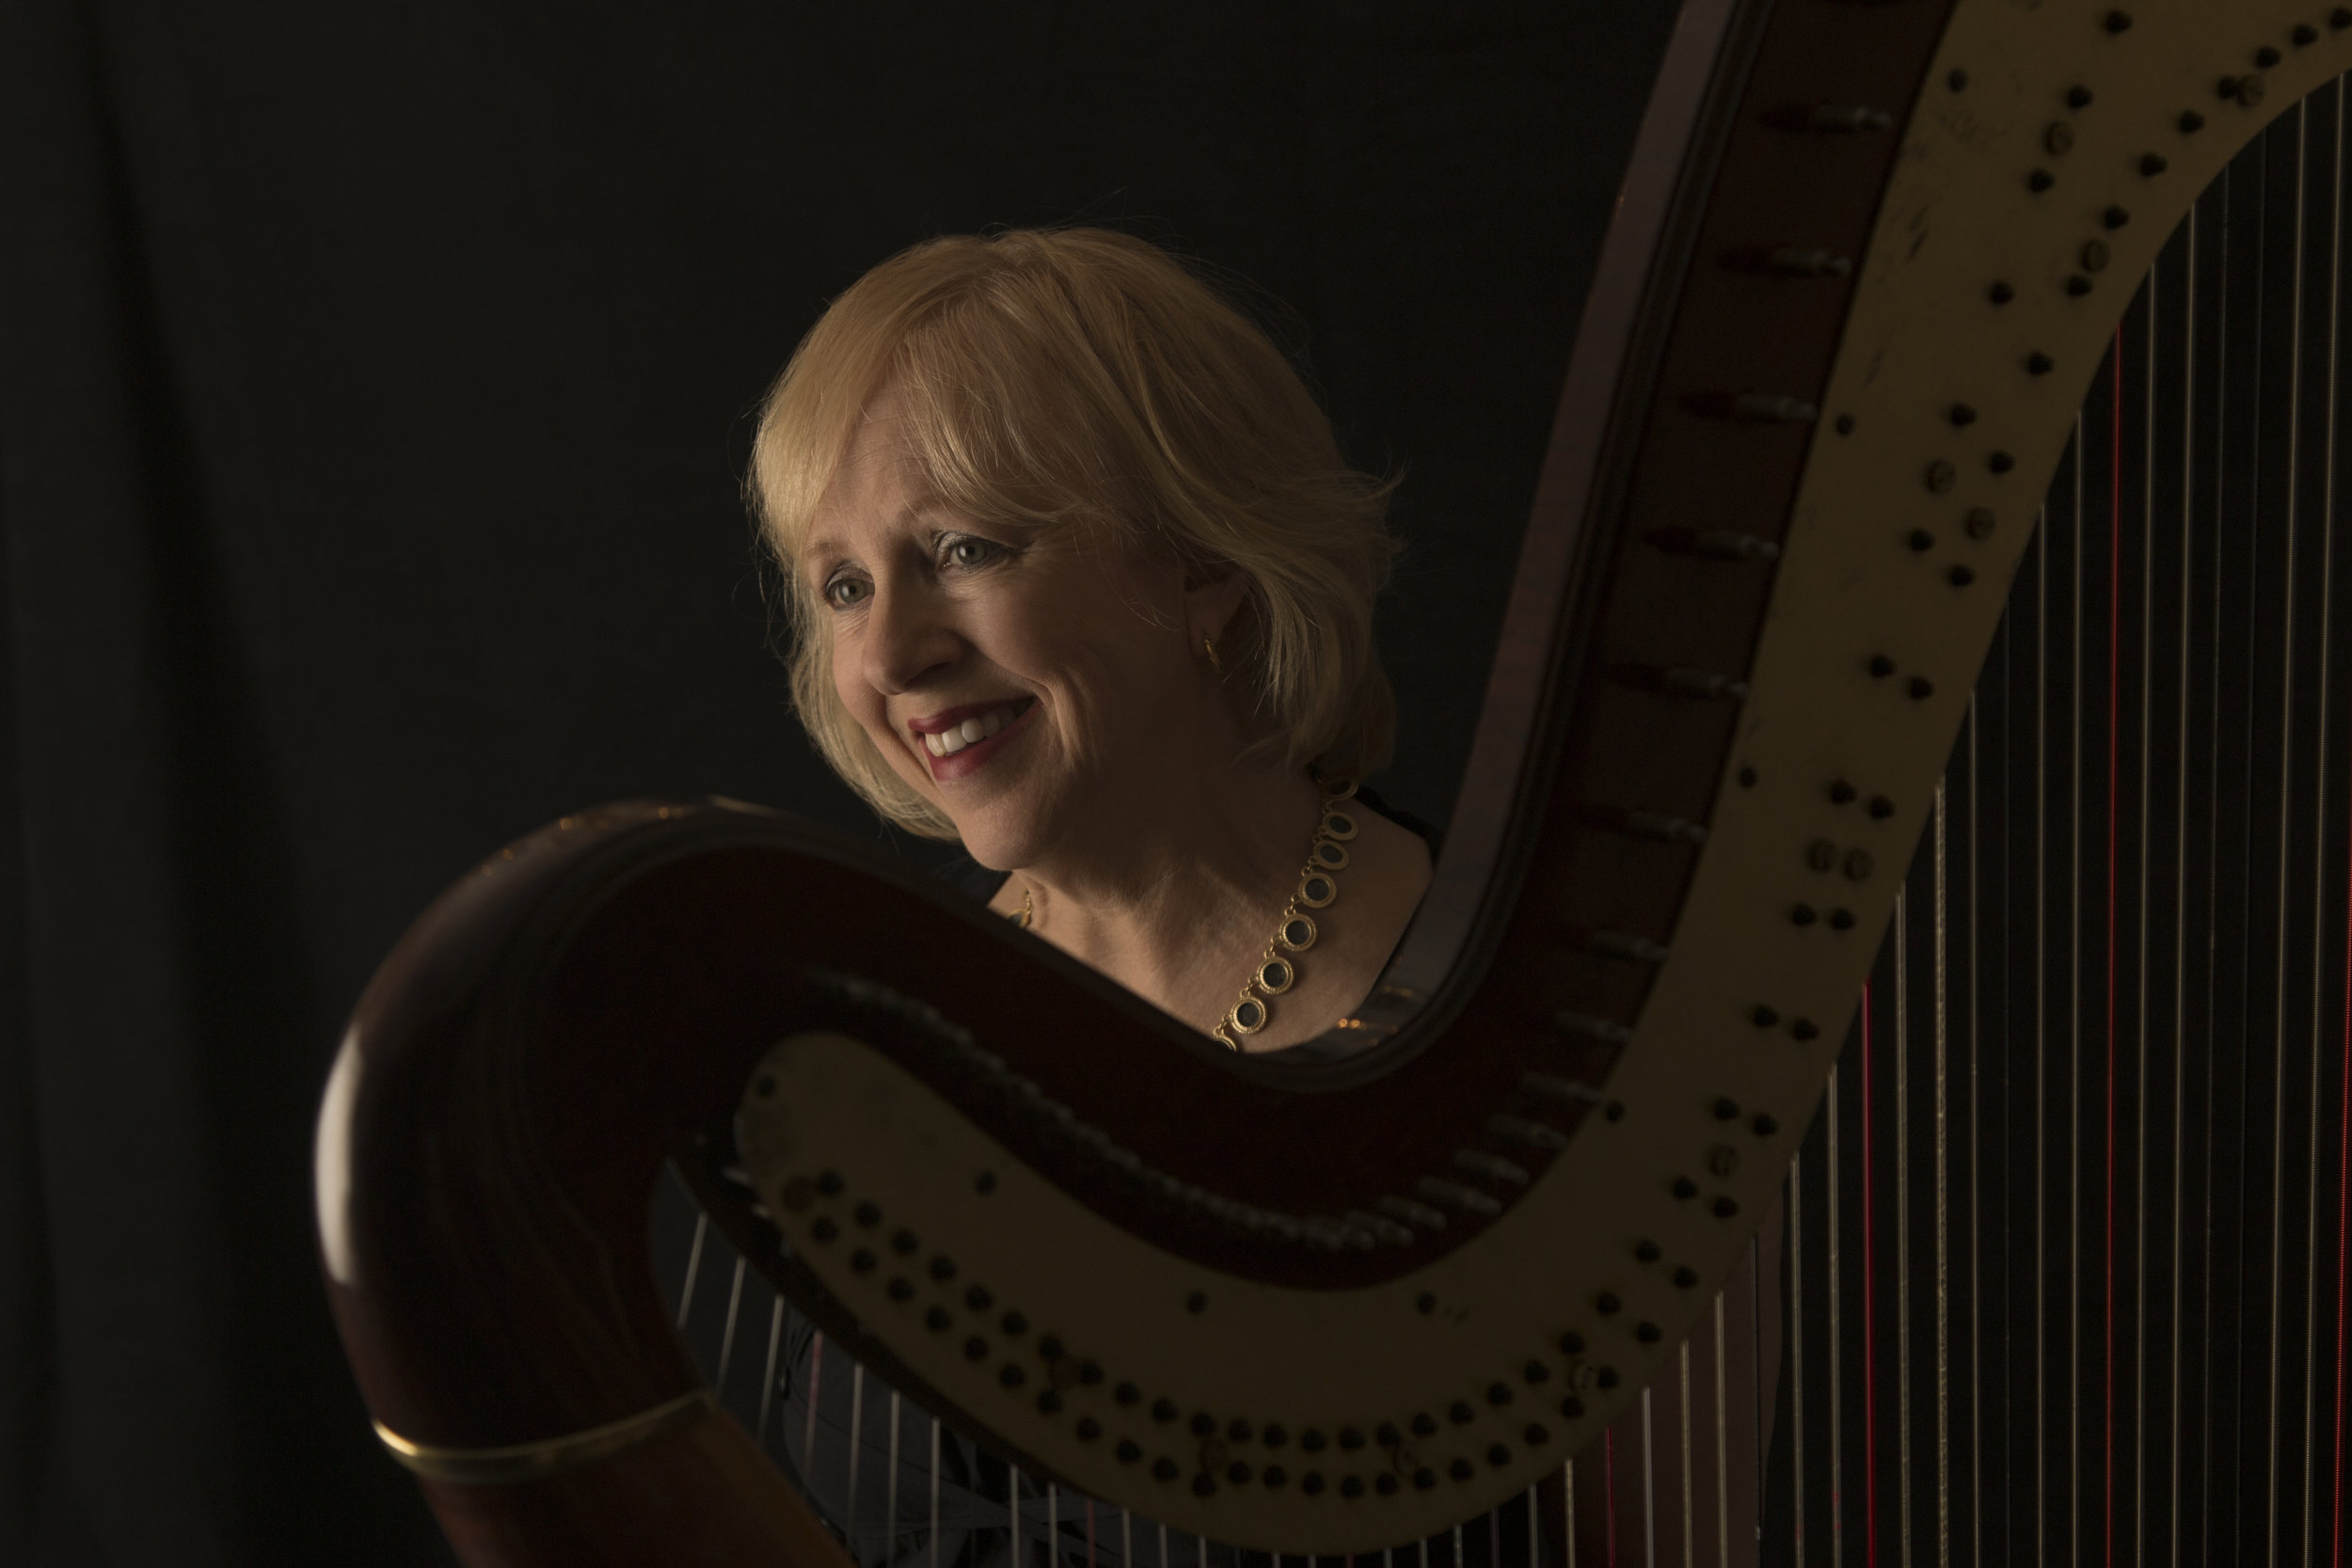 MLA Women in Music Blog Feature: Anne LeBaron - Terrific overview of my work just published with text + photos, by Renee McBride, for Music Library Association Women in Music Blog